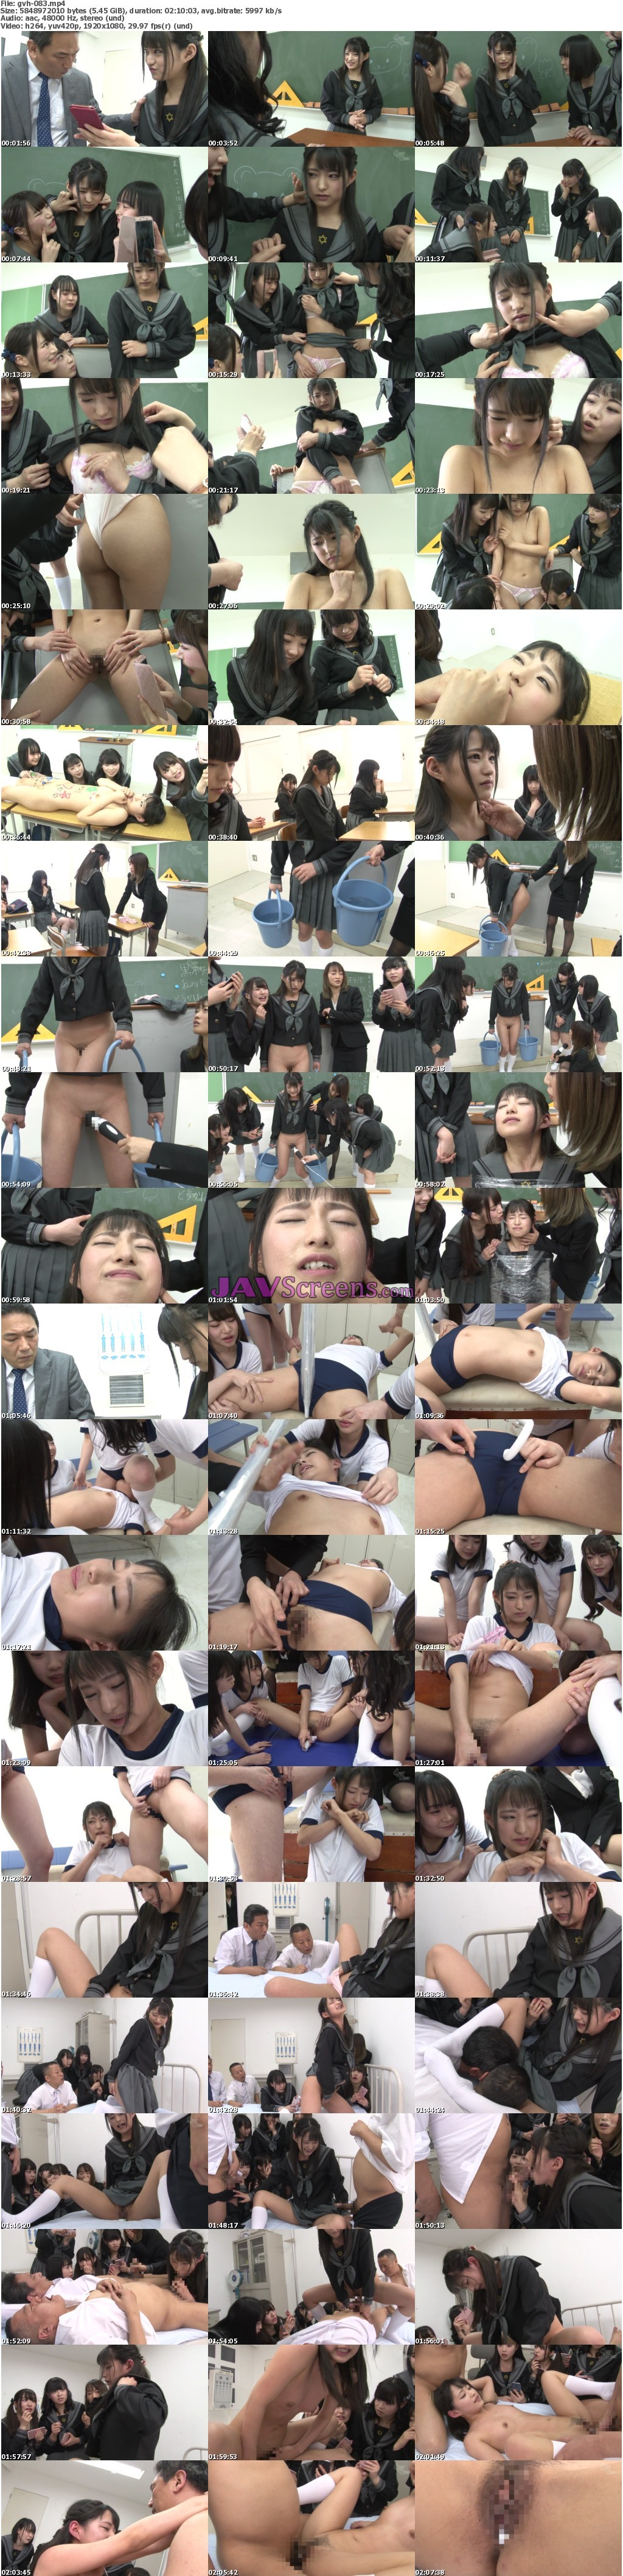 GVH-083.jpg - JAV Screenshot